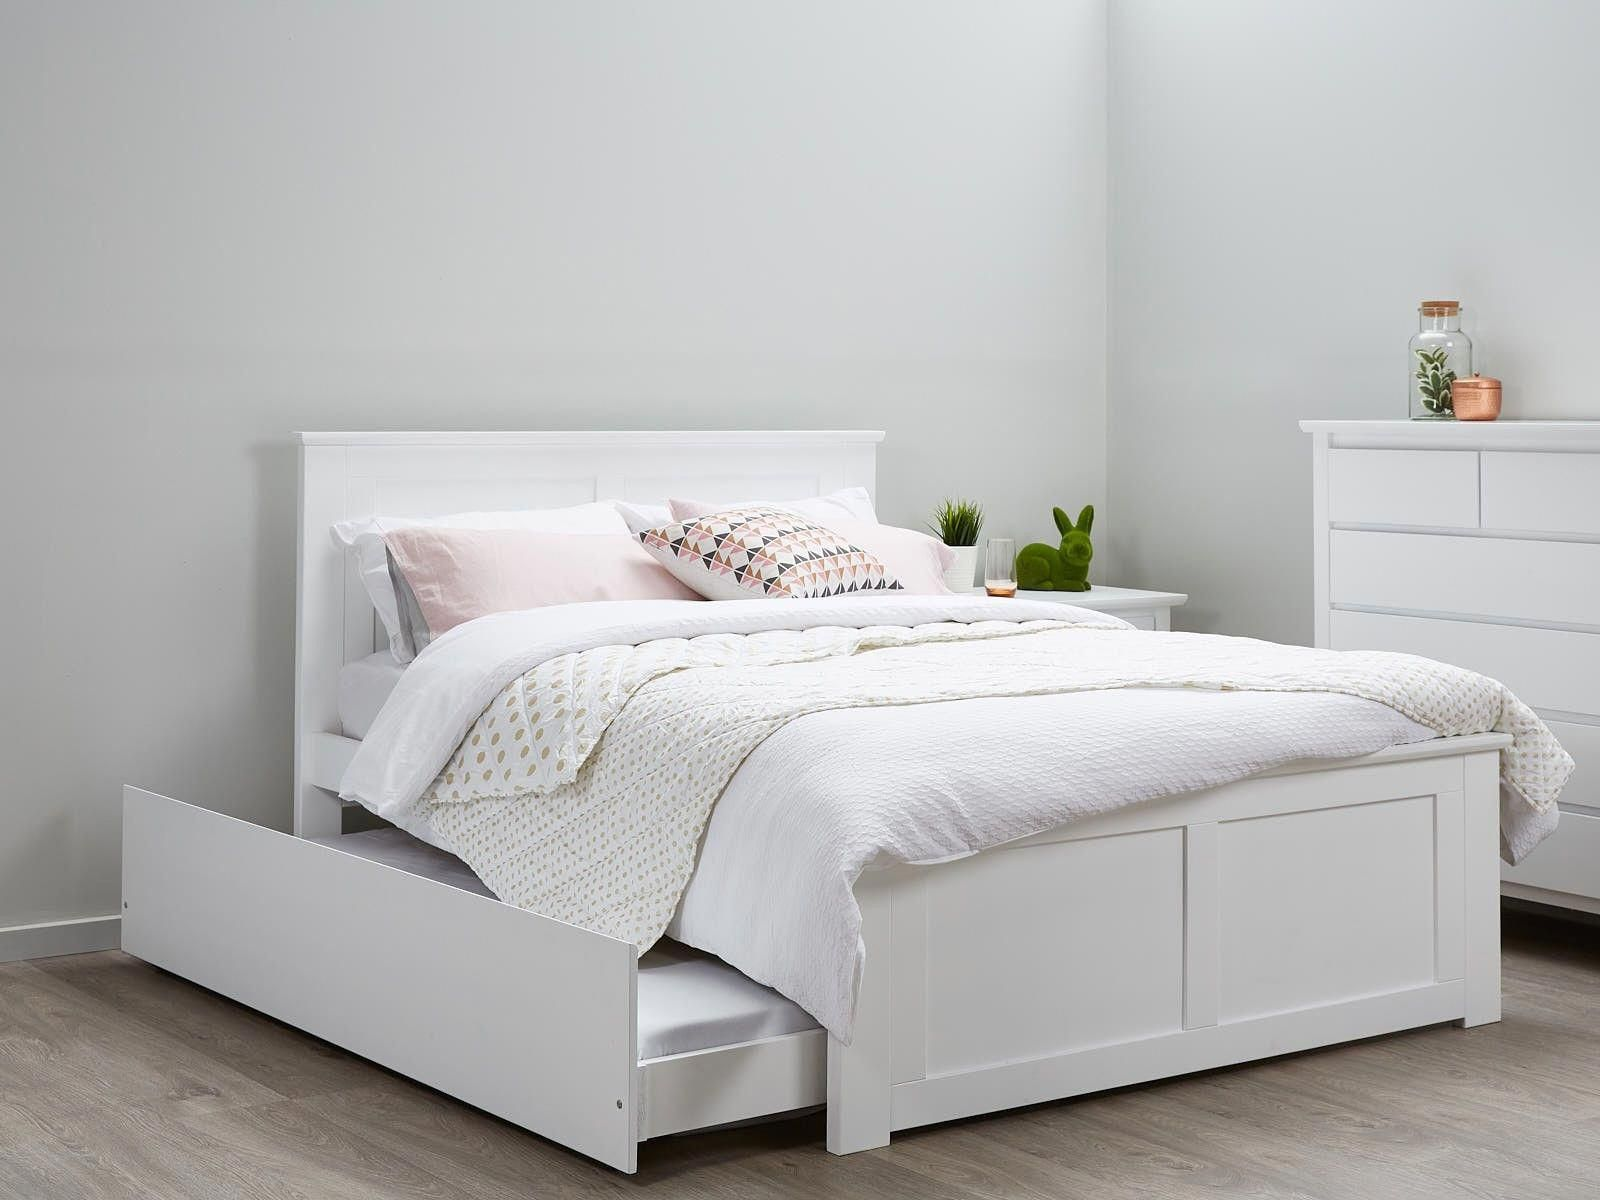 White Double Size Bed Frame With Trundle Modern Timber Childrens Kids Beds Bedroom Furniture White Bed Frame Bedroom Furniture Sets Childrens Bedroom Furniture